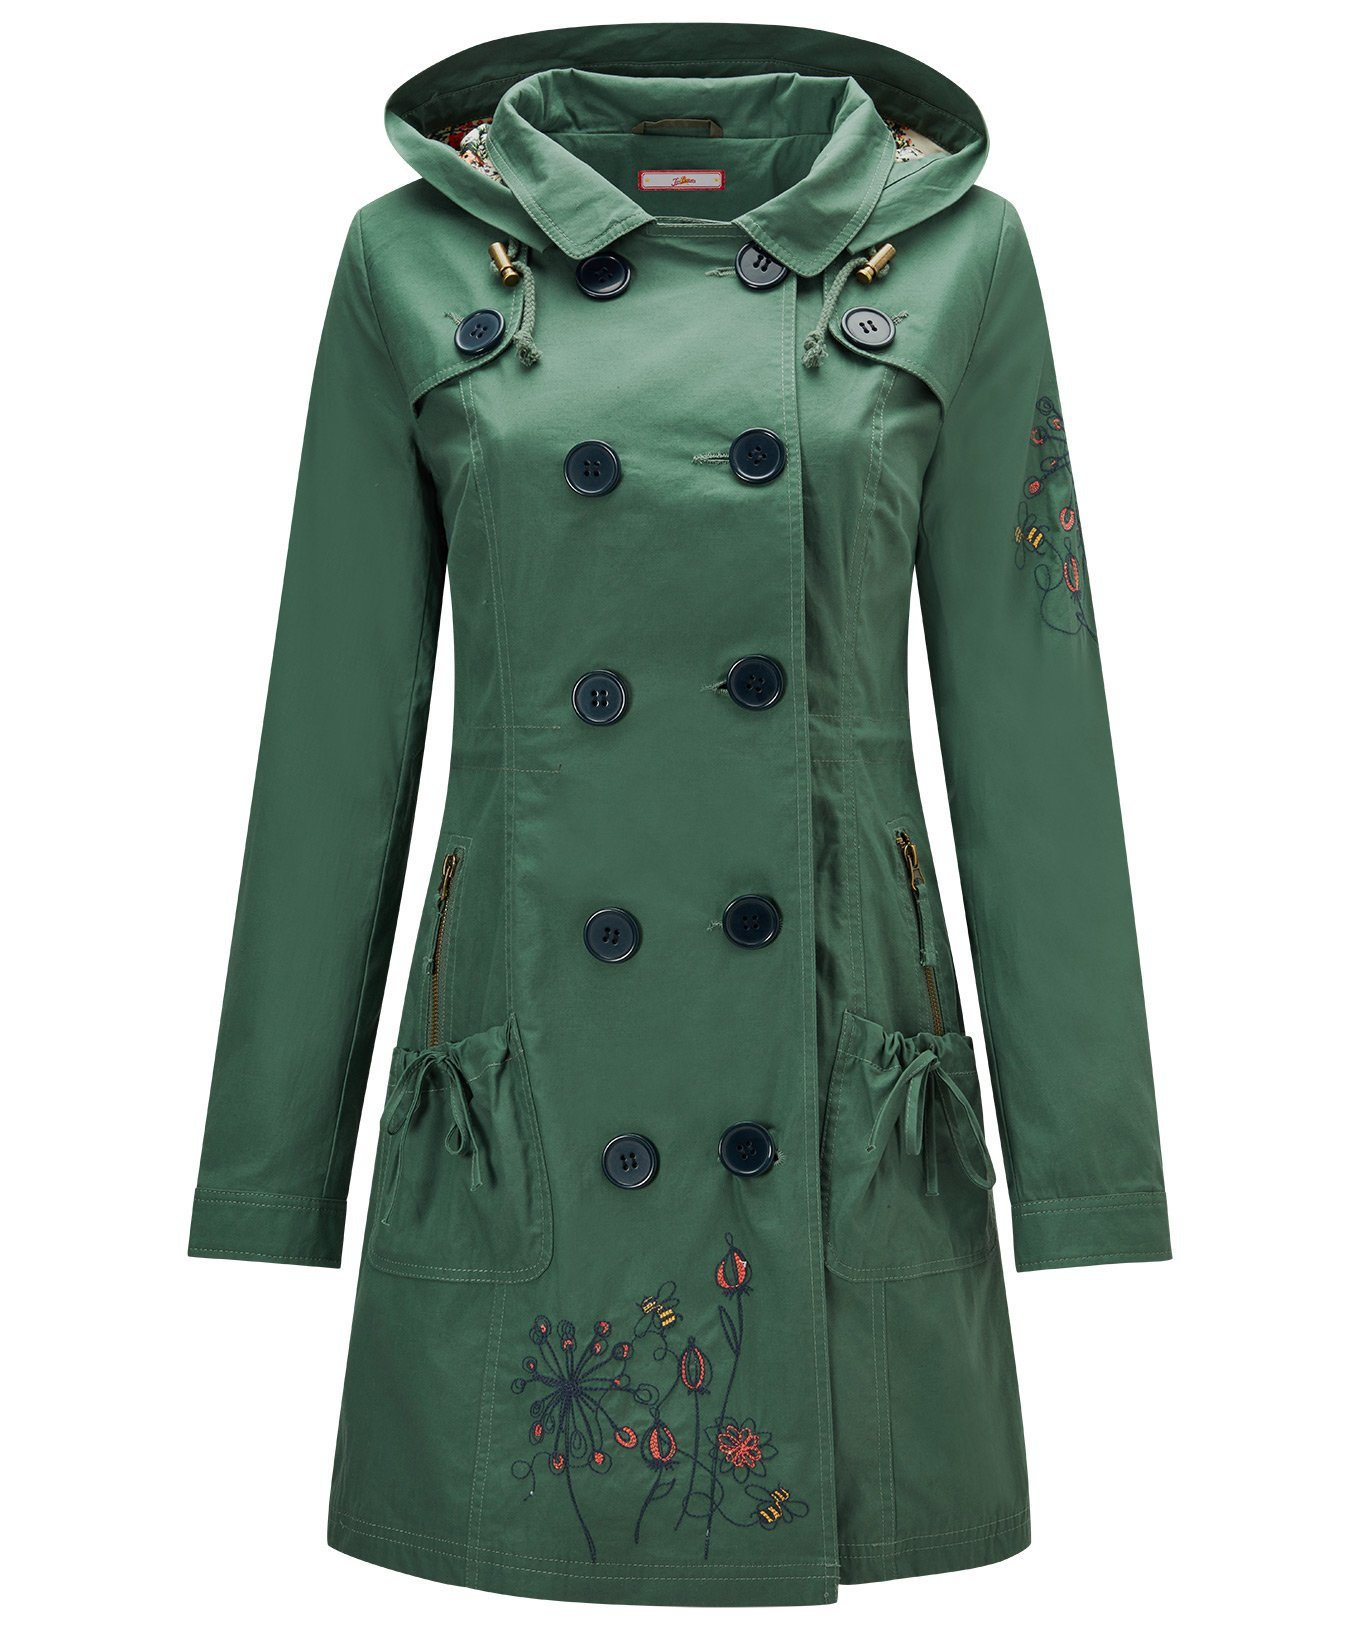 Joe Browns Trenchcoat | Bekleidung > Mäntel > Trenchcoats | Joe Browns